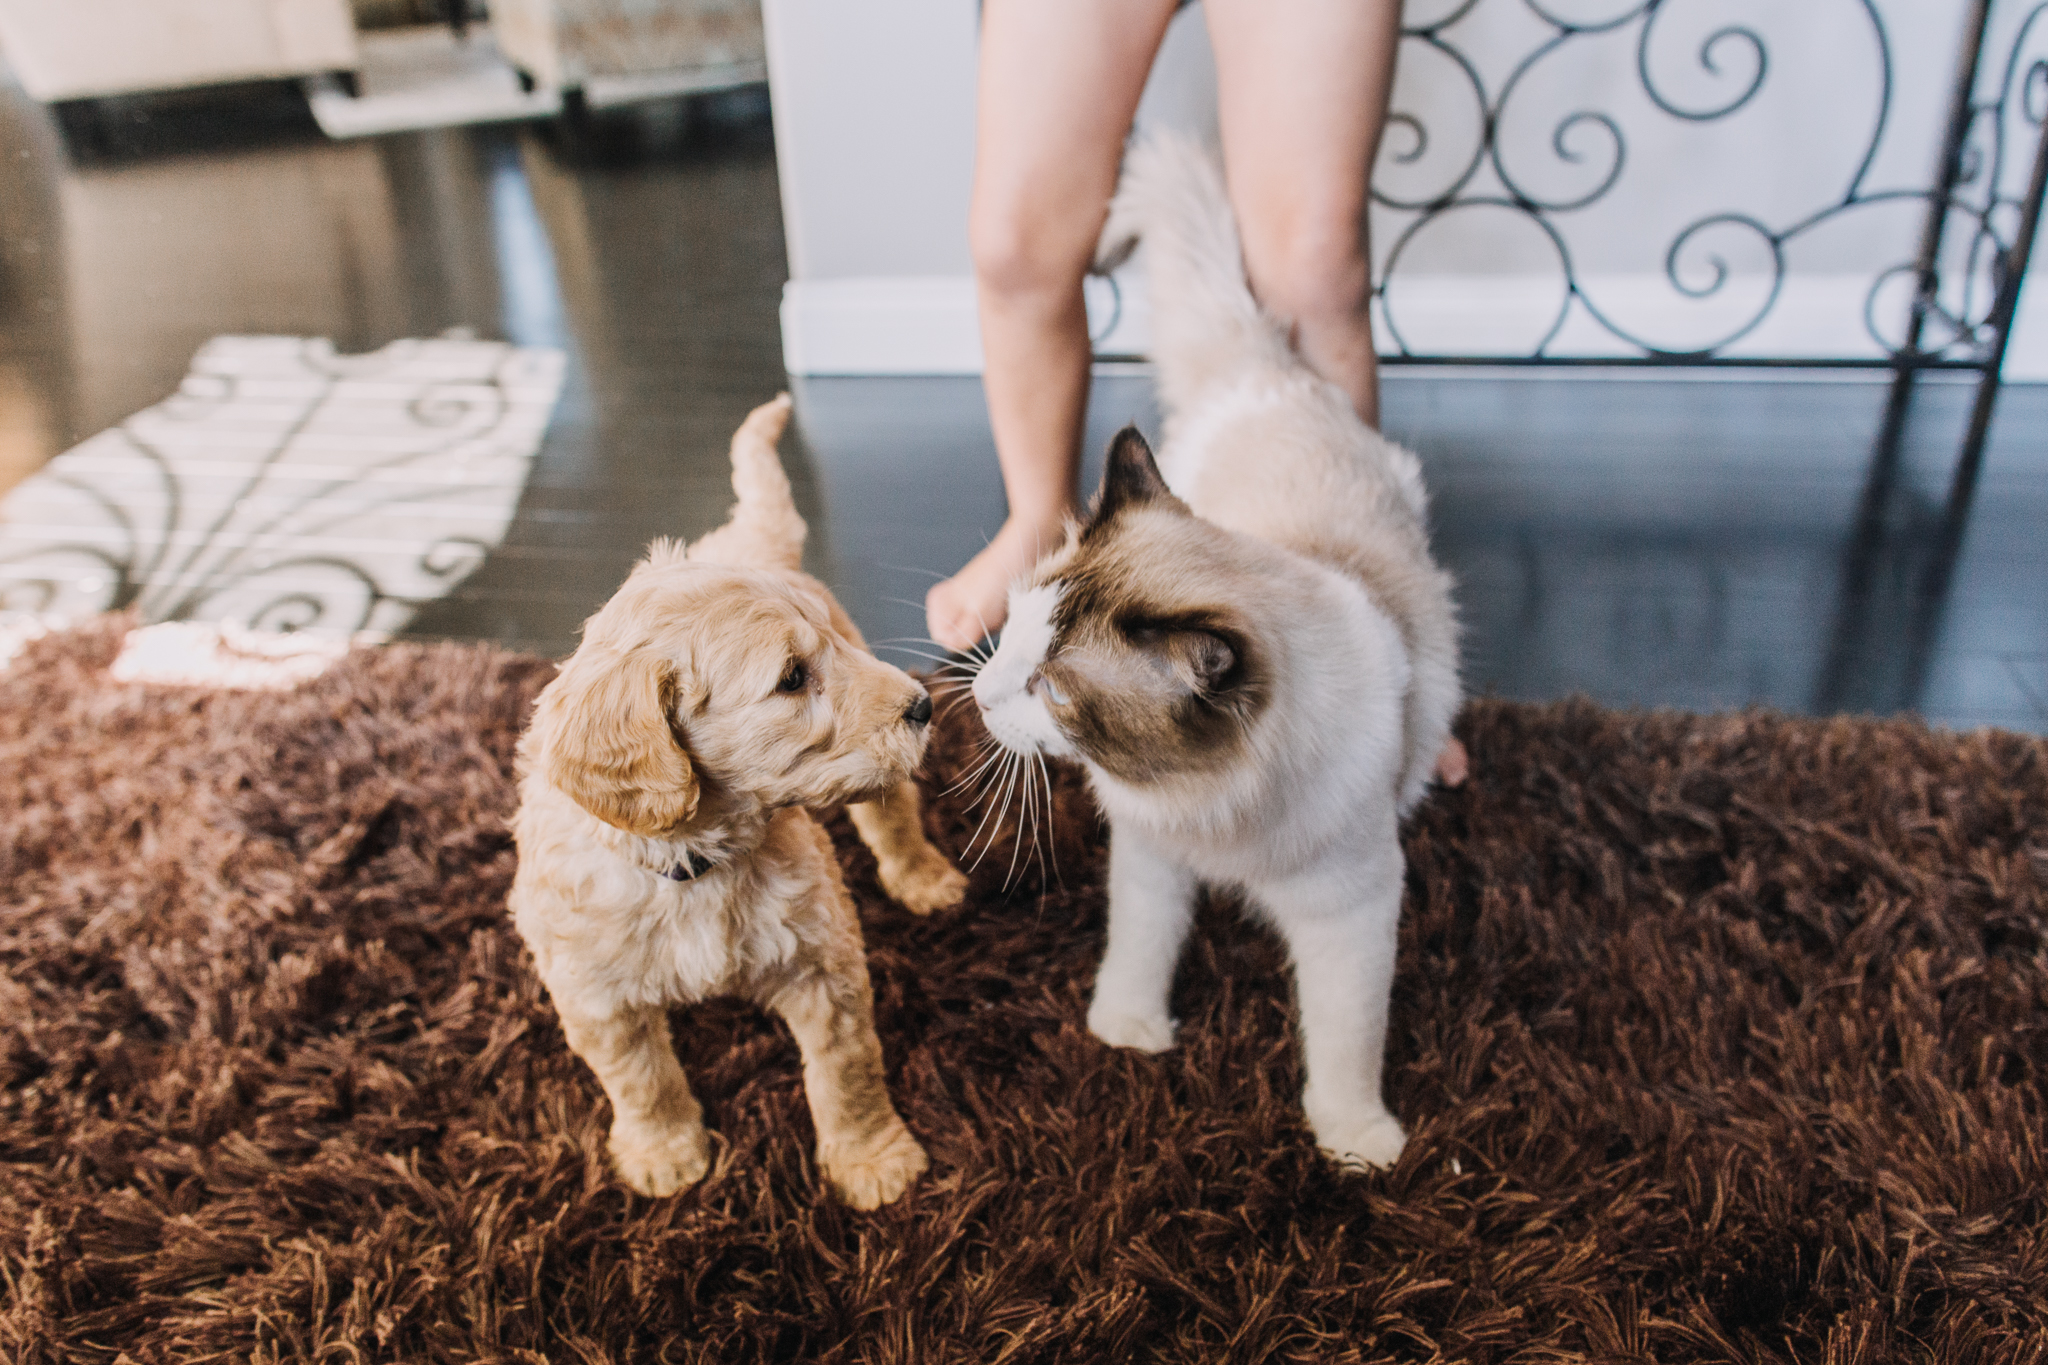 Goldendoodle puppy and Ragdoll cat